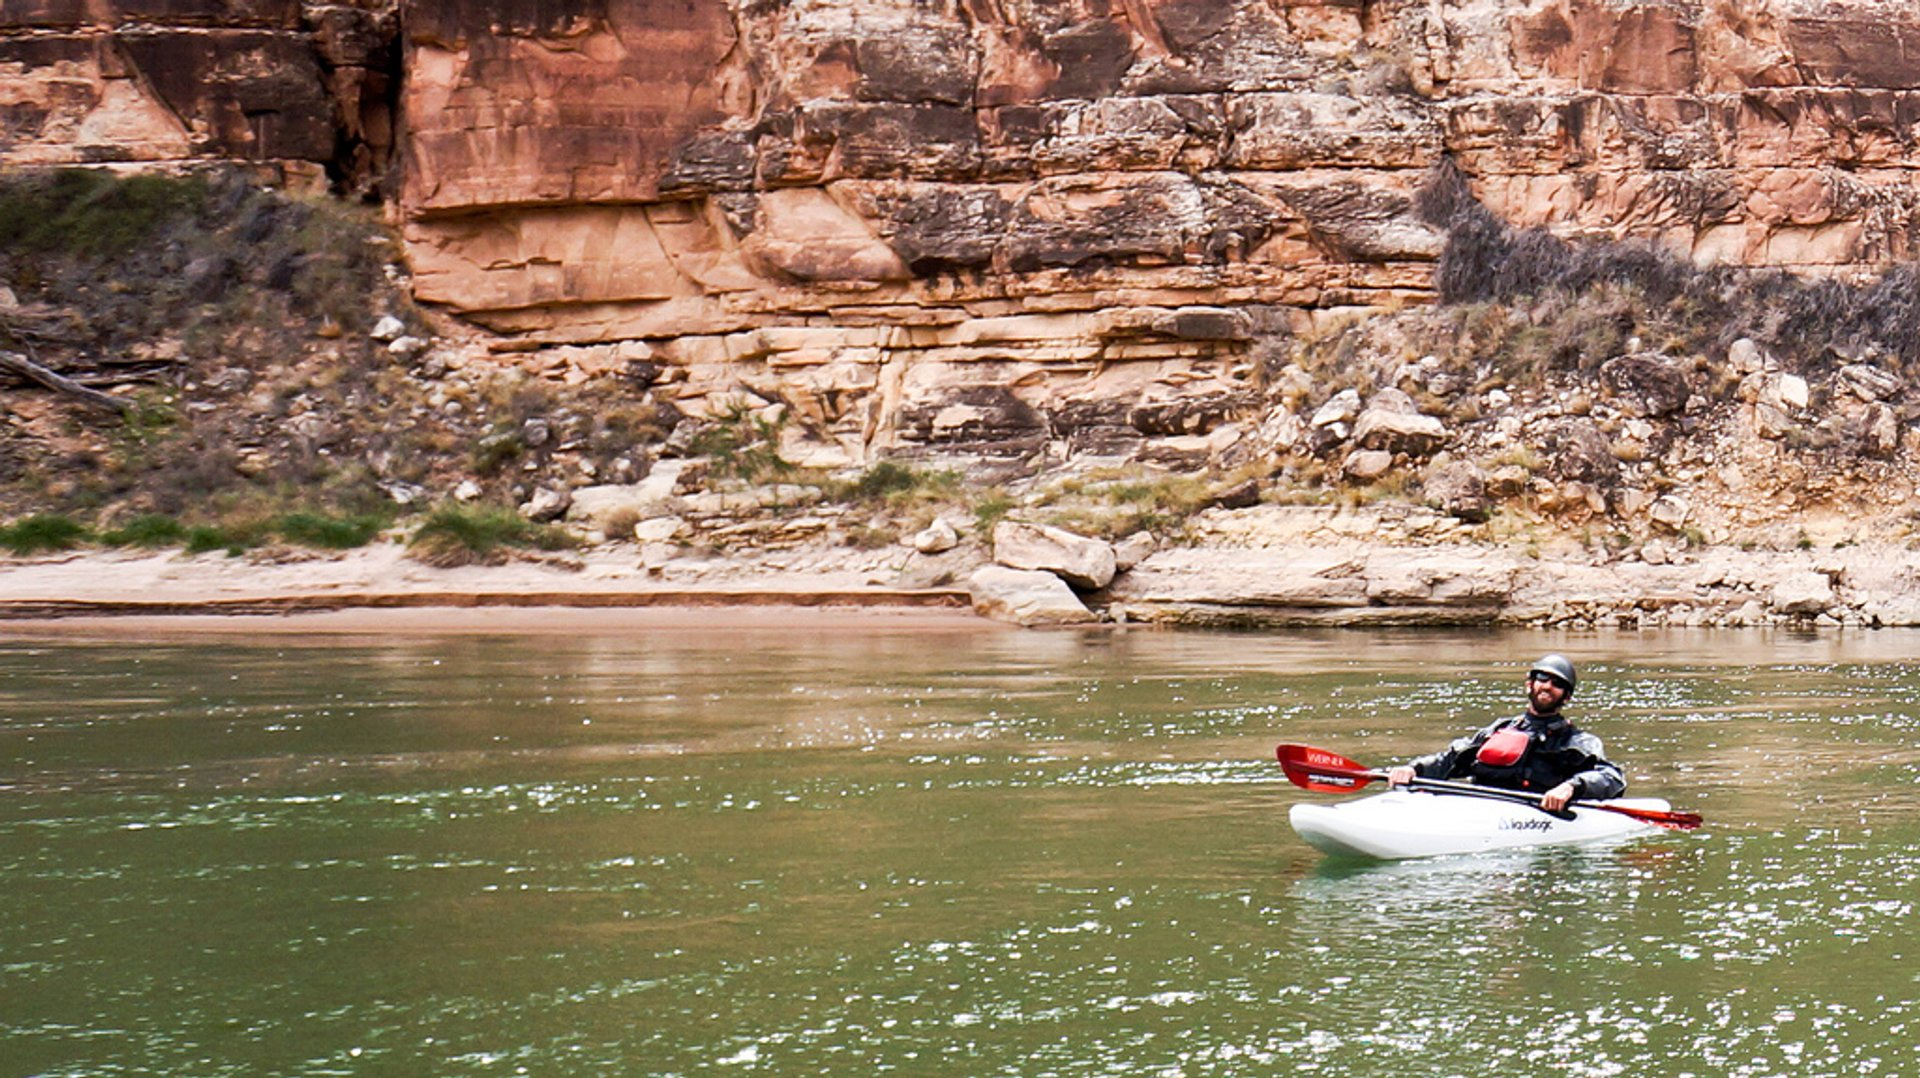 Kayaking in Grand Canyon 2020 - Best Time